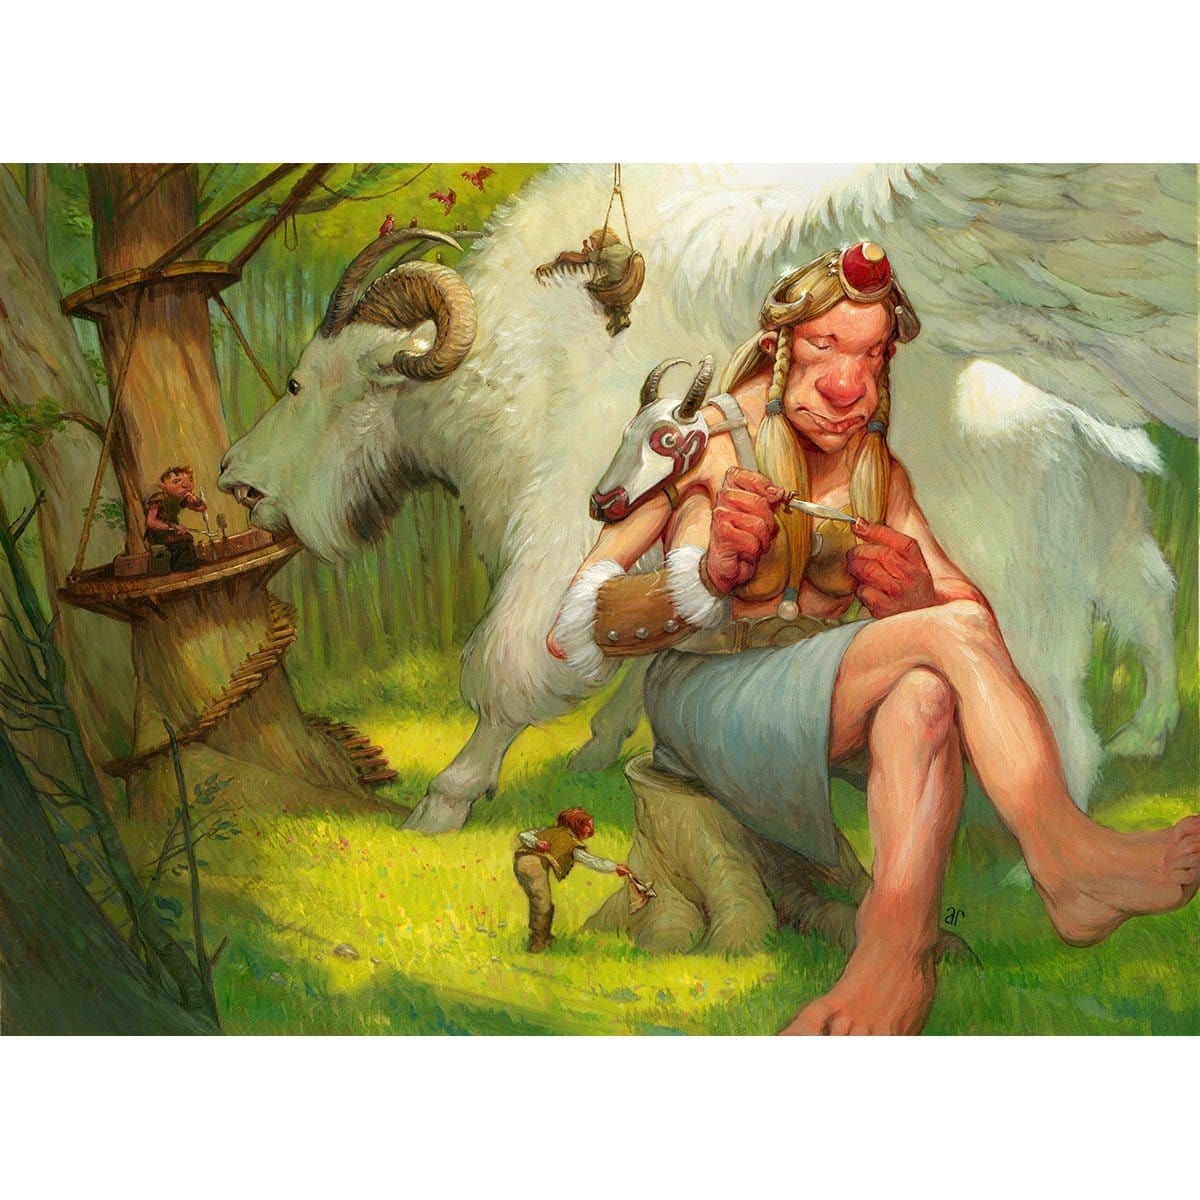 Cloudgoat Ranger Print - Print - Original Magic Art - Accessories for Magic the Gathering and other card games